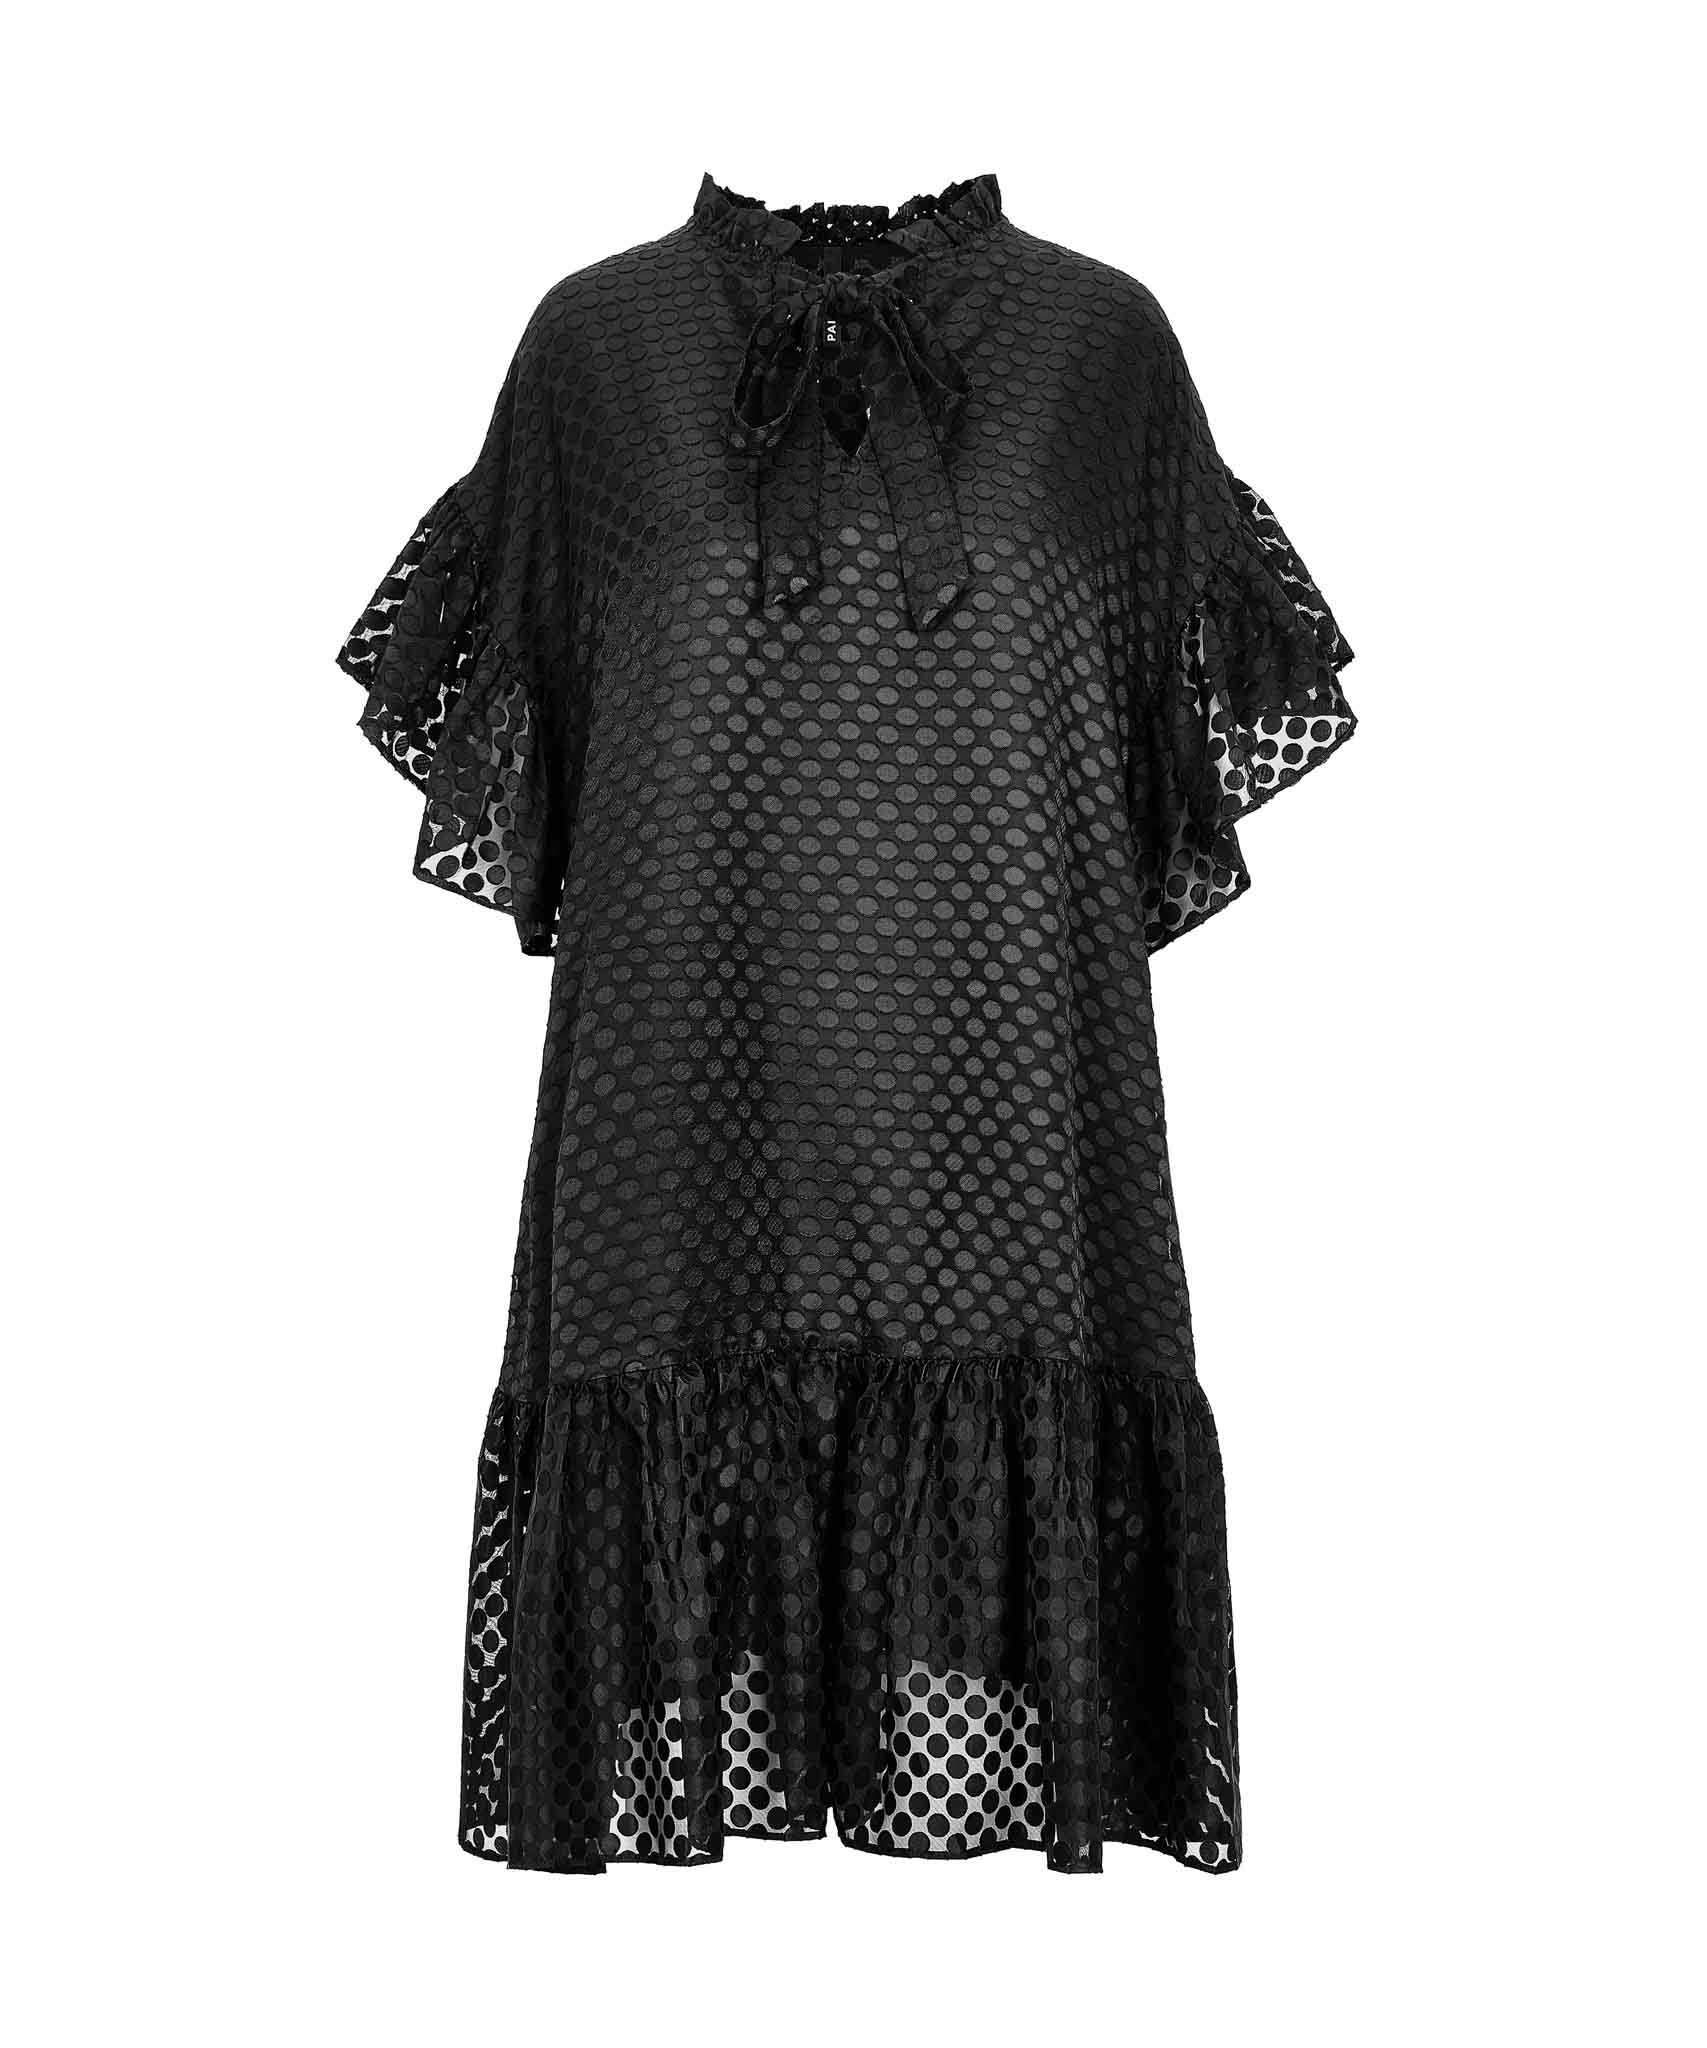 Palones Black Spot Mesh Ruffle Detail Dress